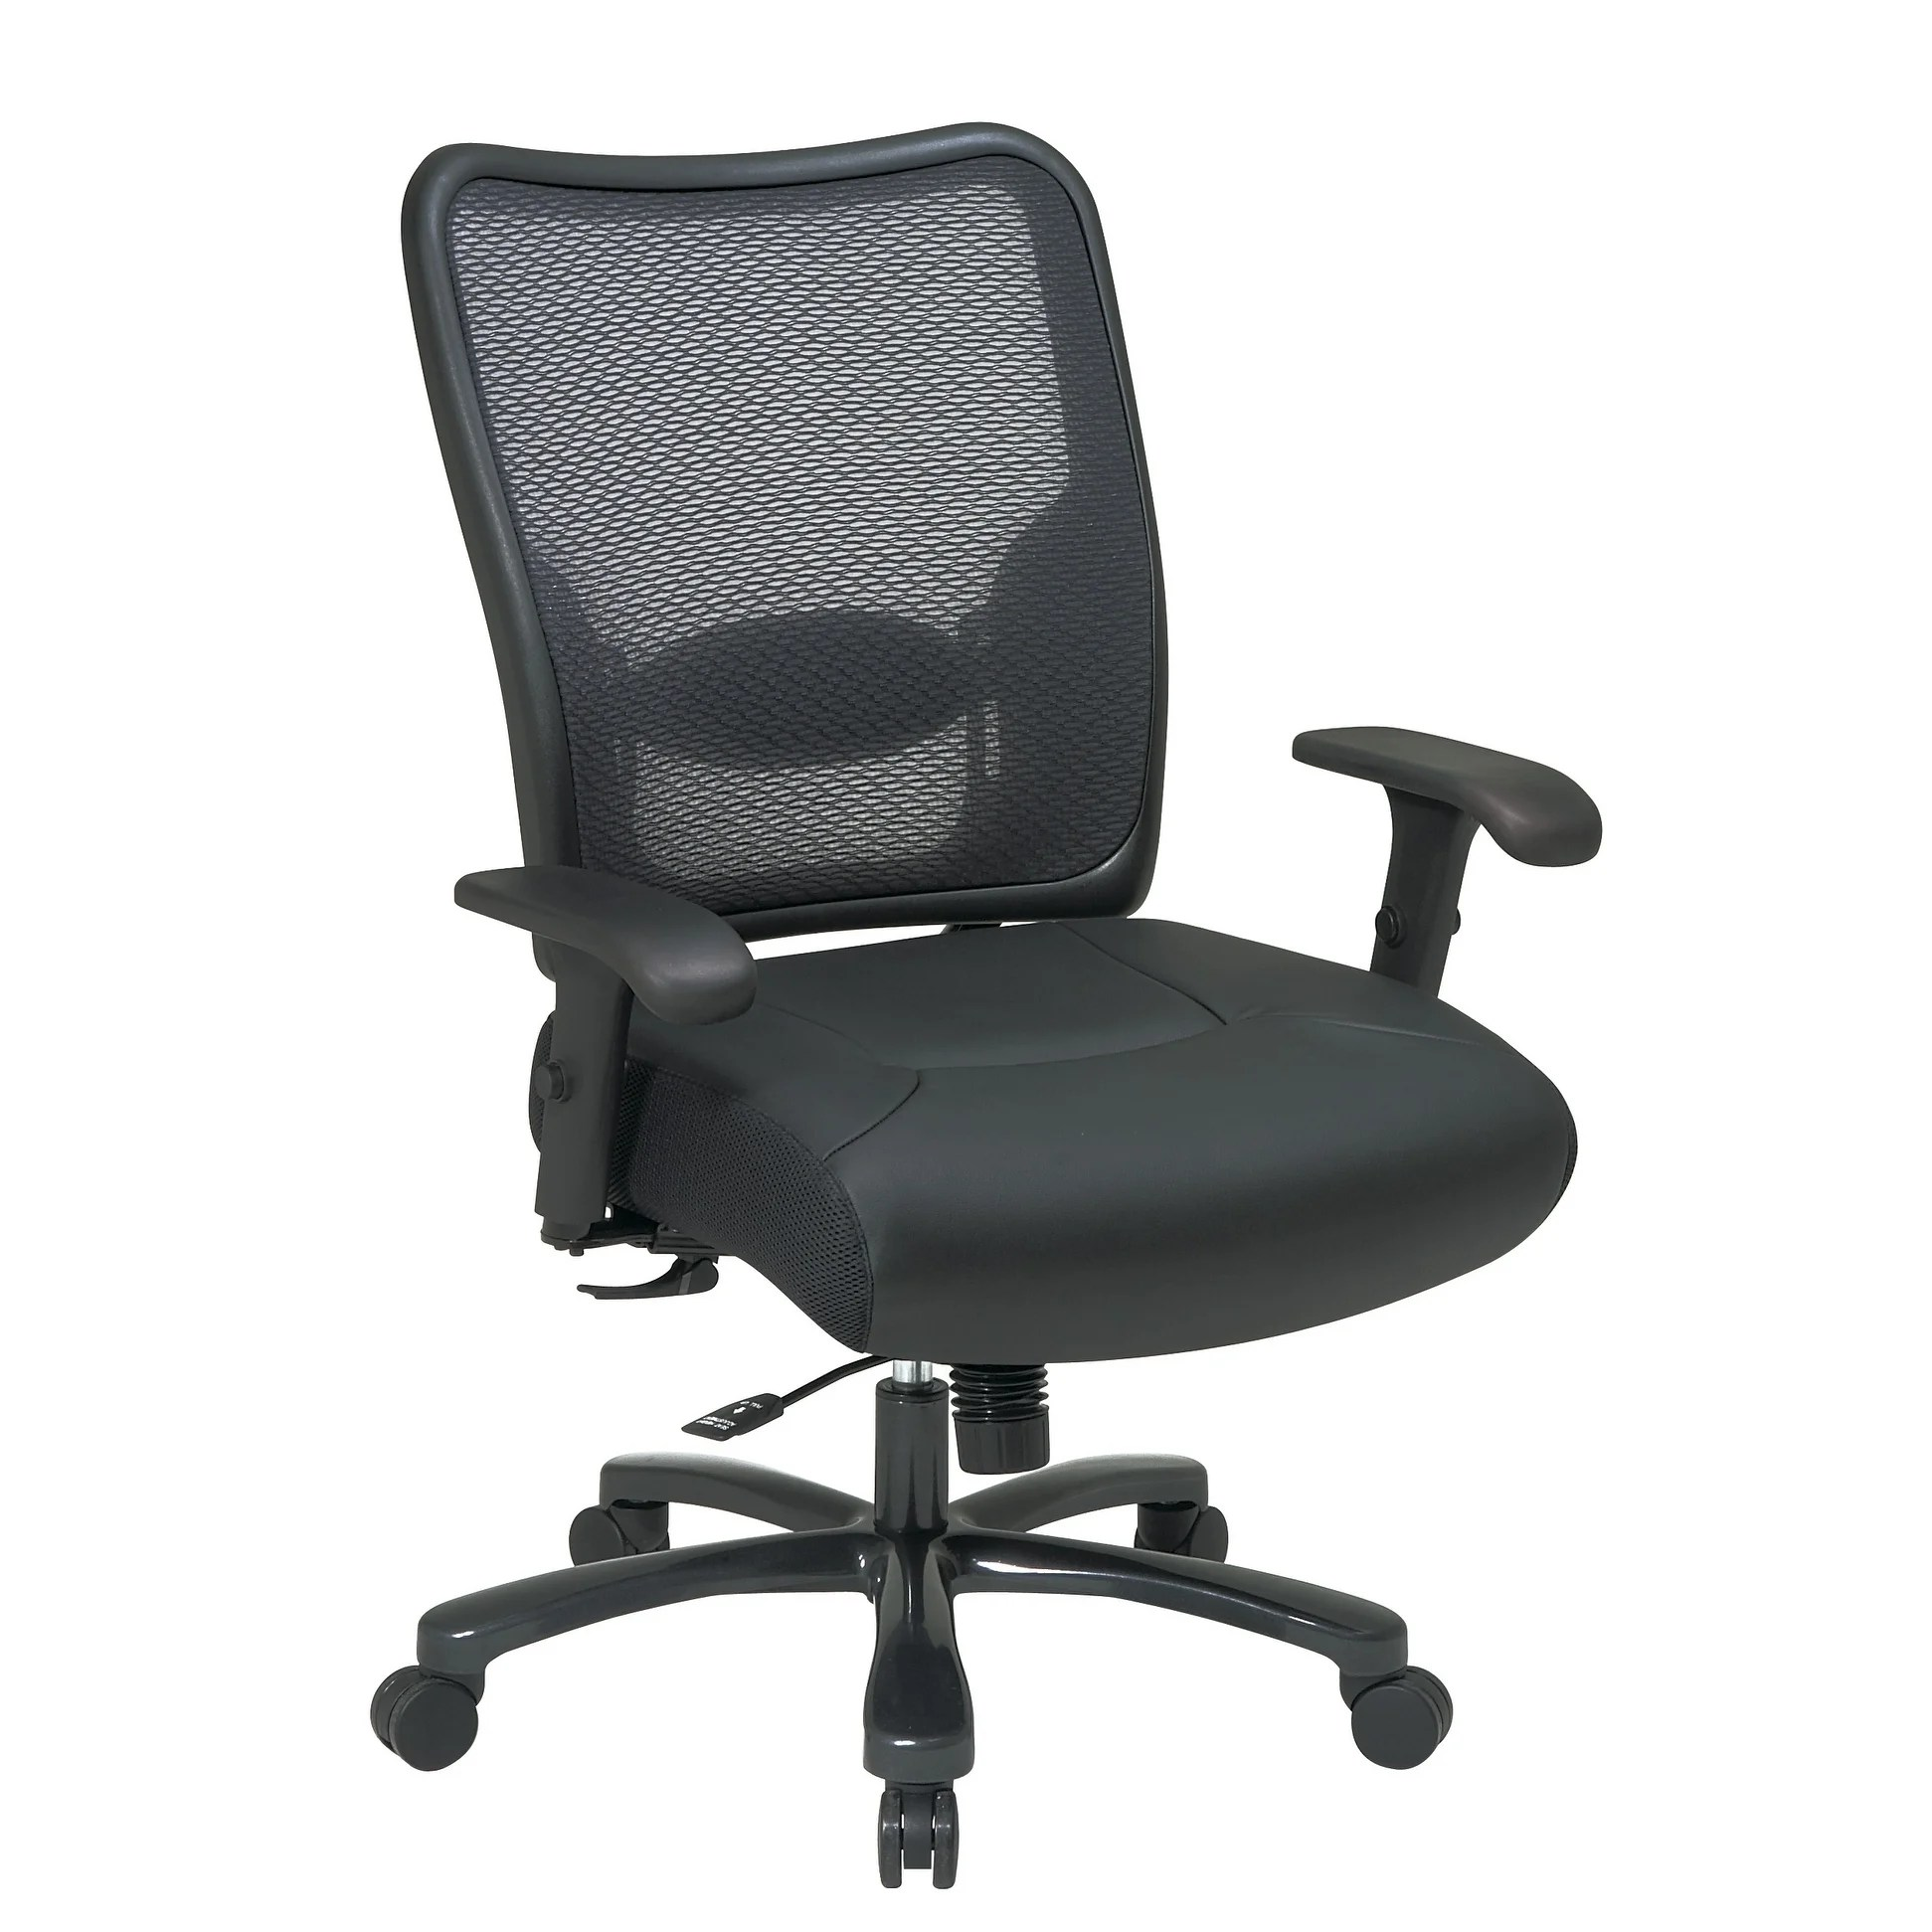 office star chairs yoga ball chair benefits shop big tall double airgrid back ergonomic free shipping today overstock com 3021447